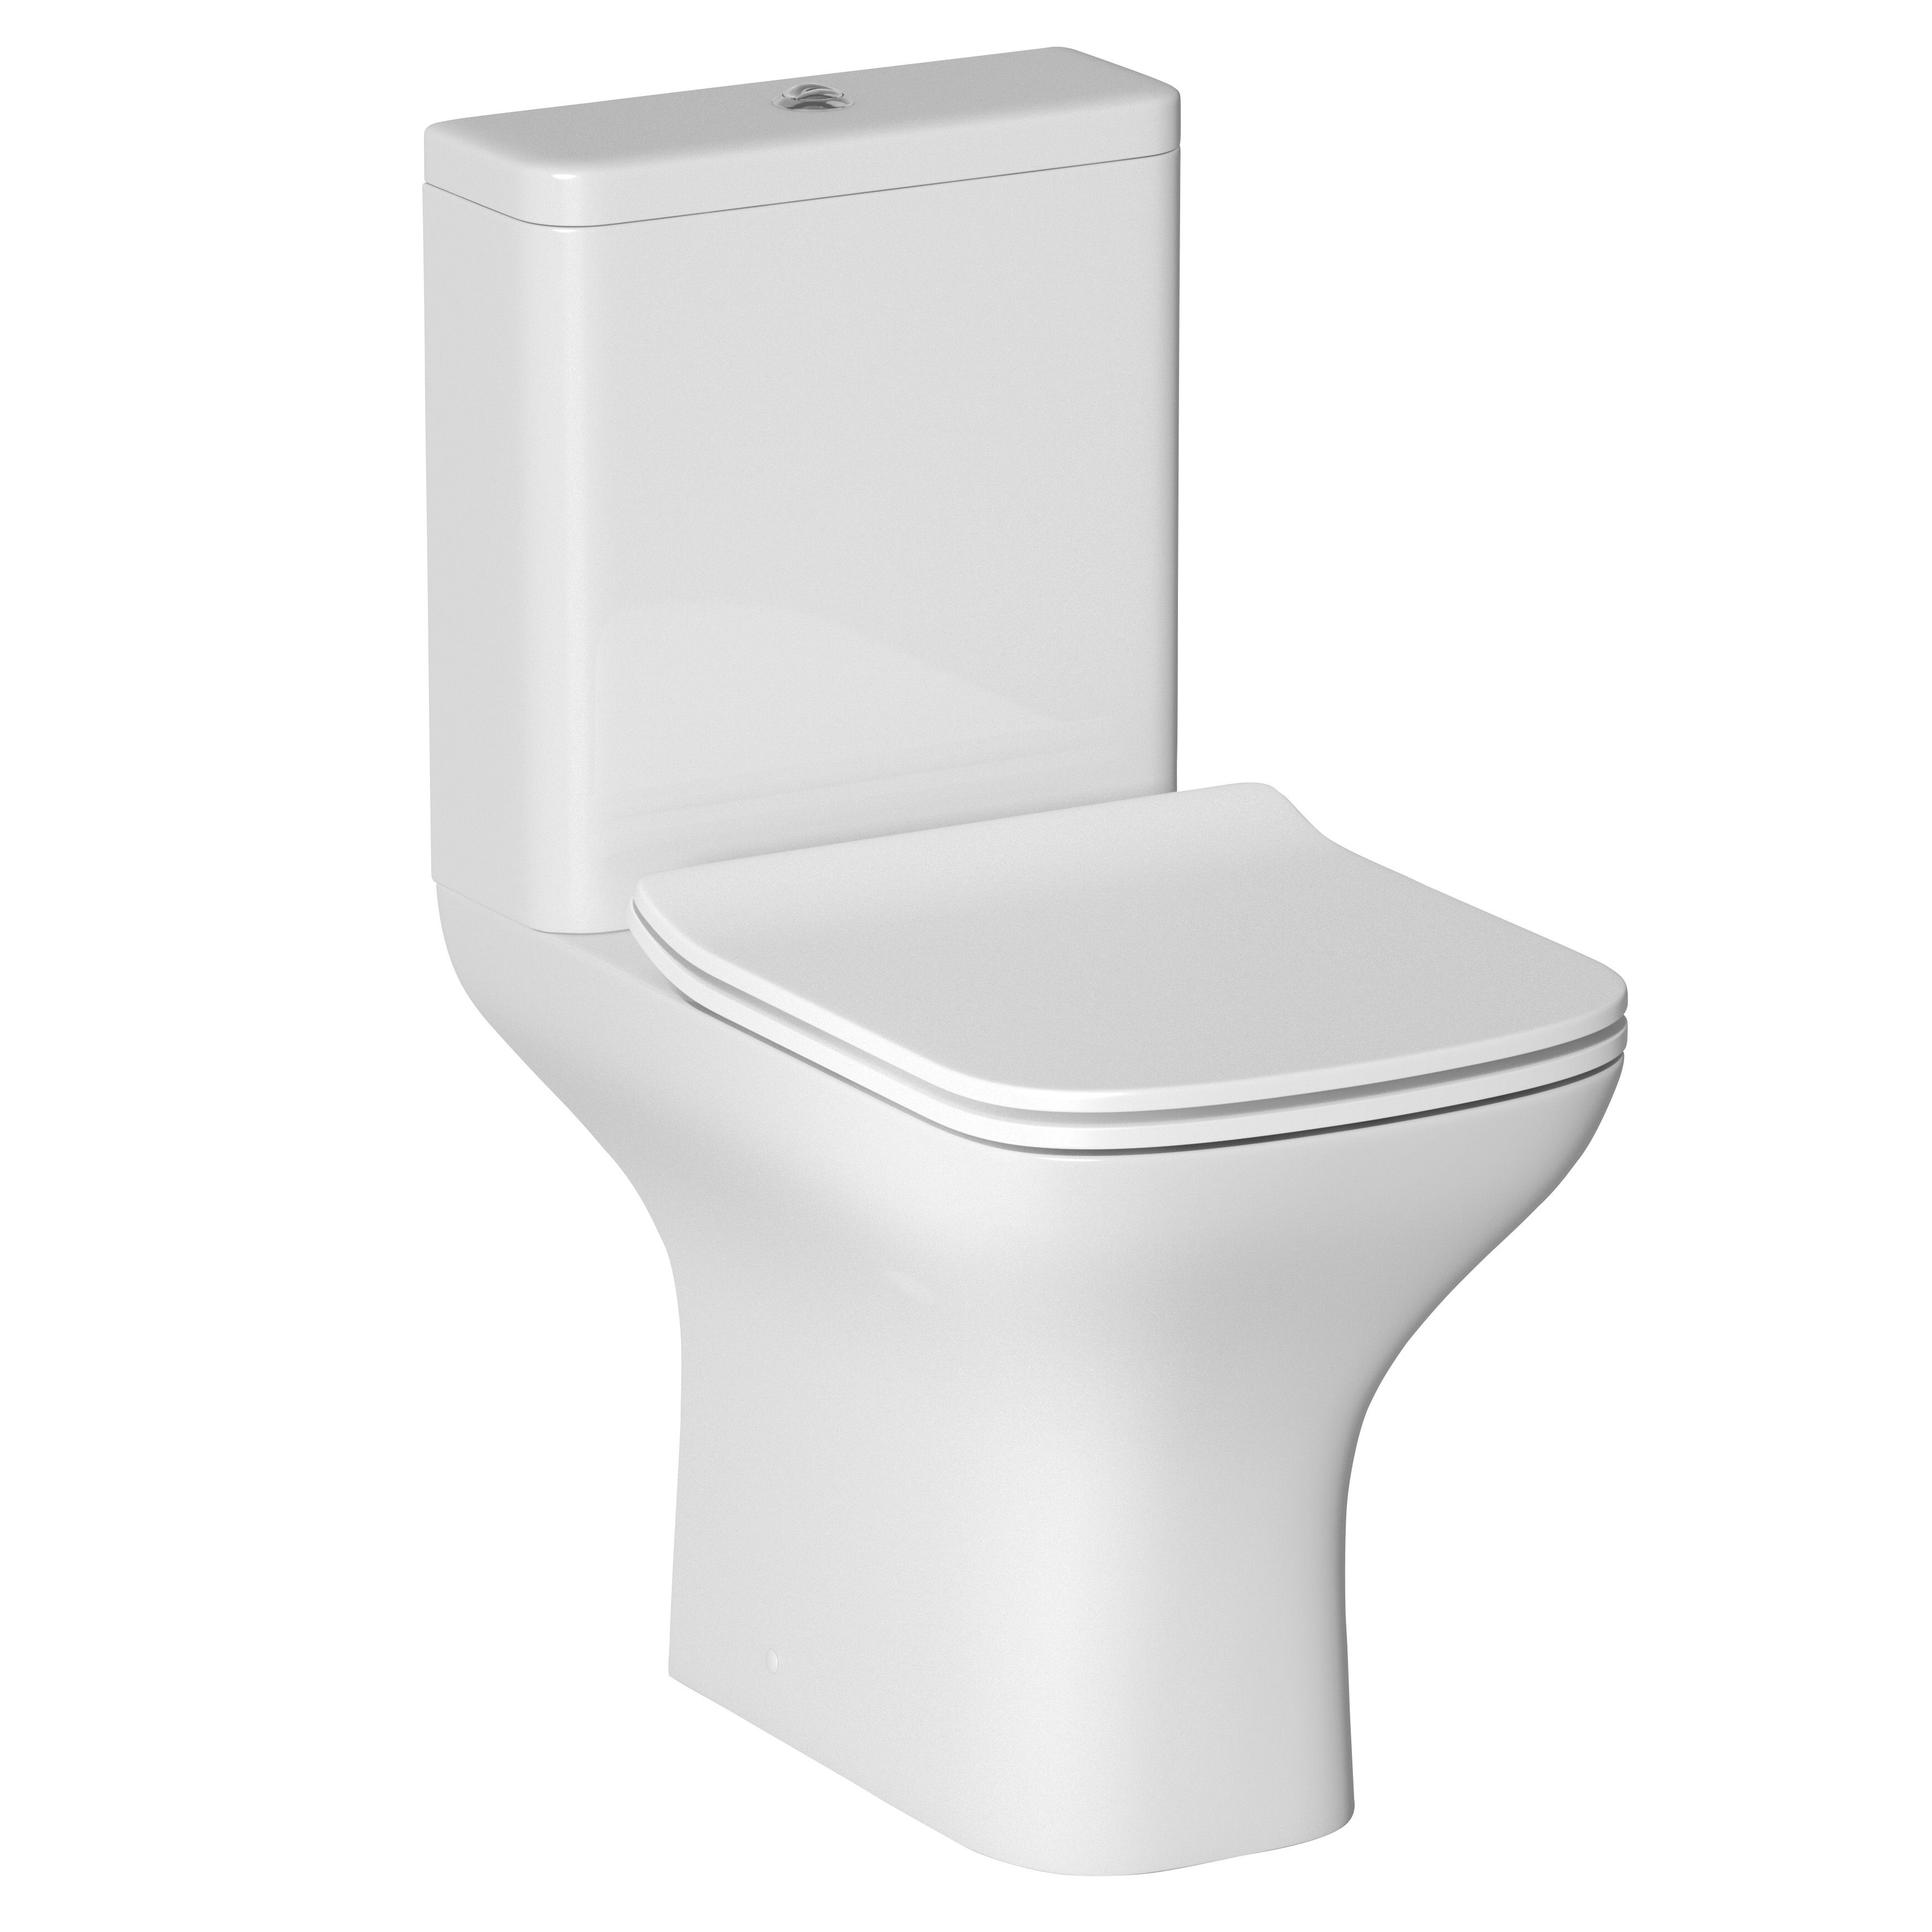 Cooke & Lewis Lanzo Closecoupled Toilet With Soft